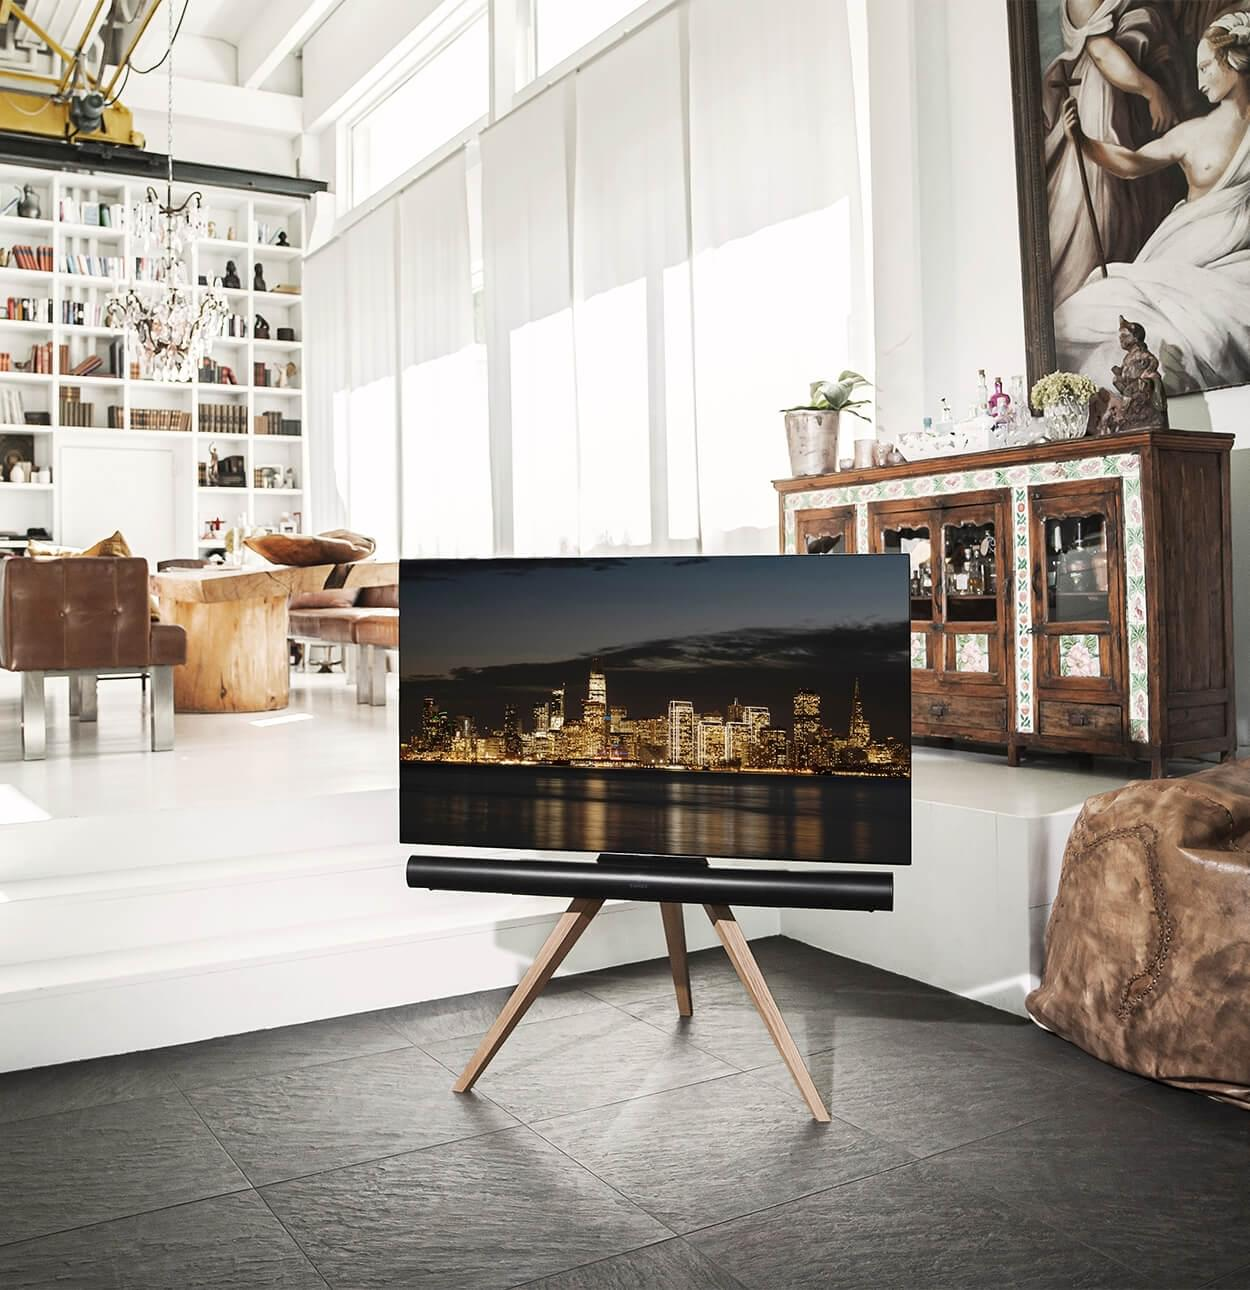 Spectral Art tv-stand